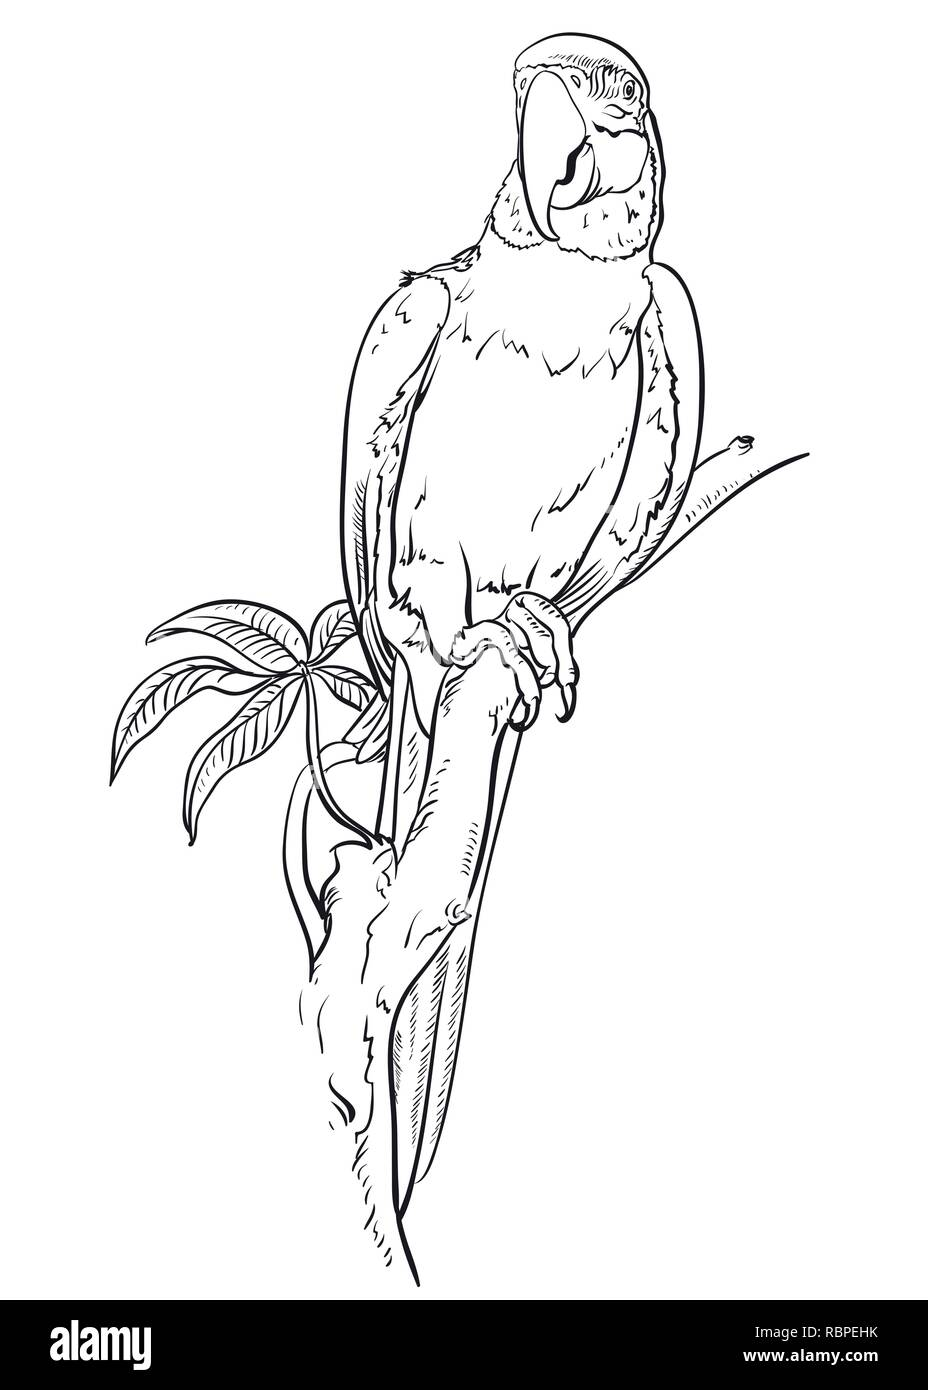 parrot macaw sits on the branch coloring pages bird RBPEHK